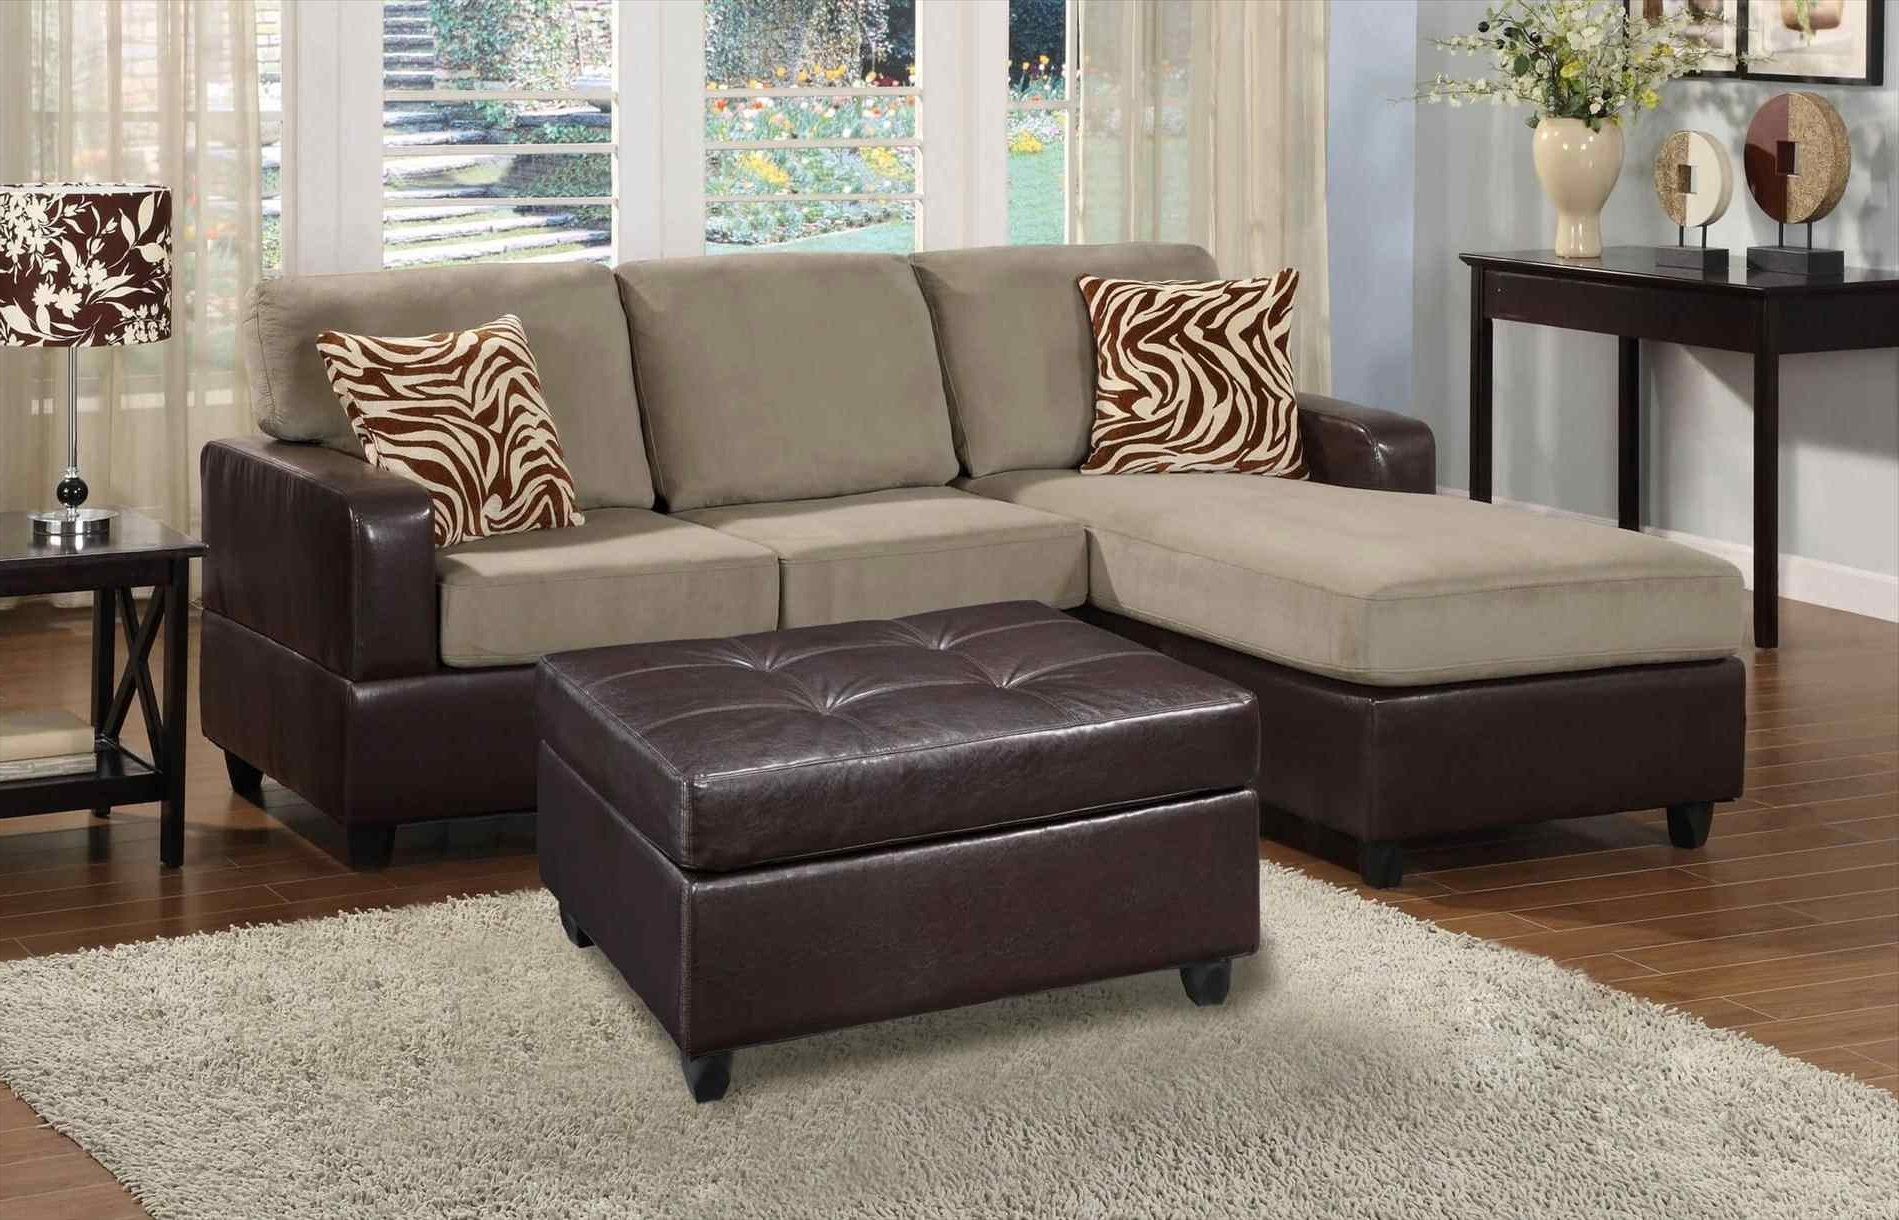 Sectional Sofas At Bad Boy With Regard To 2017 Couch : Ottomans Wrap Around Couch Unusual Design Large Sectional (View 12 of 15)